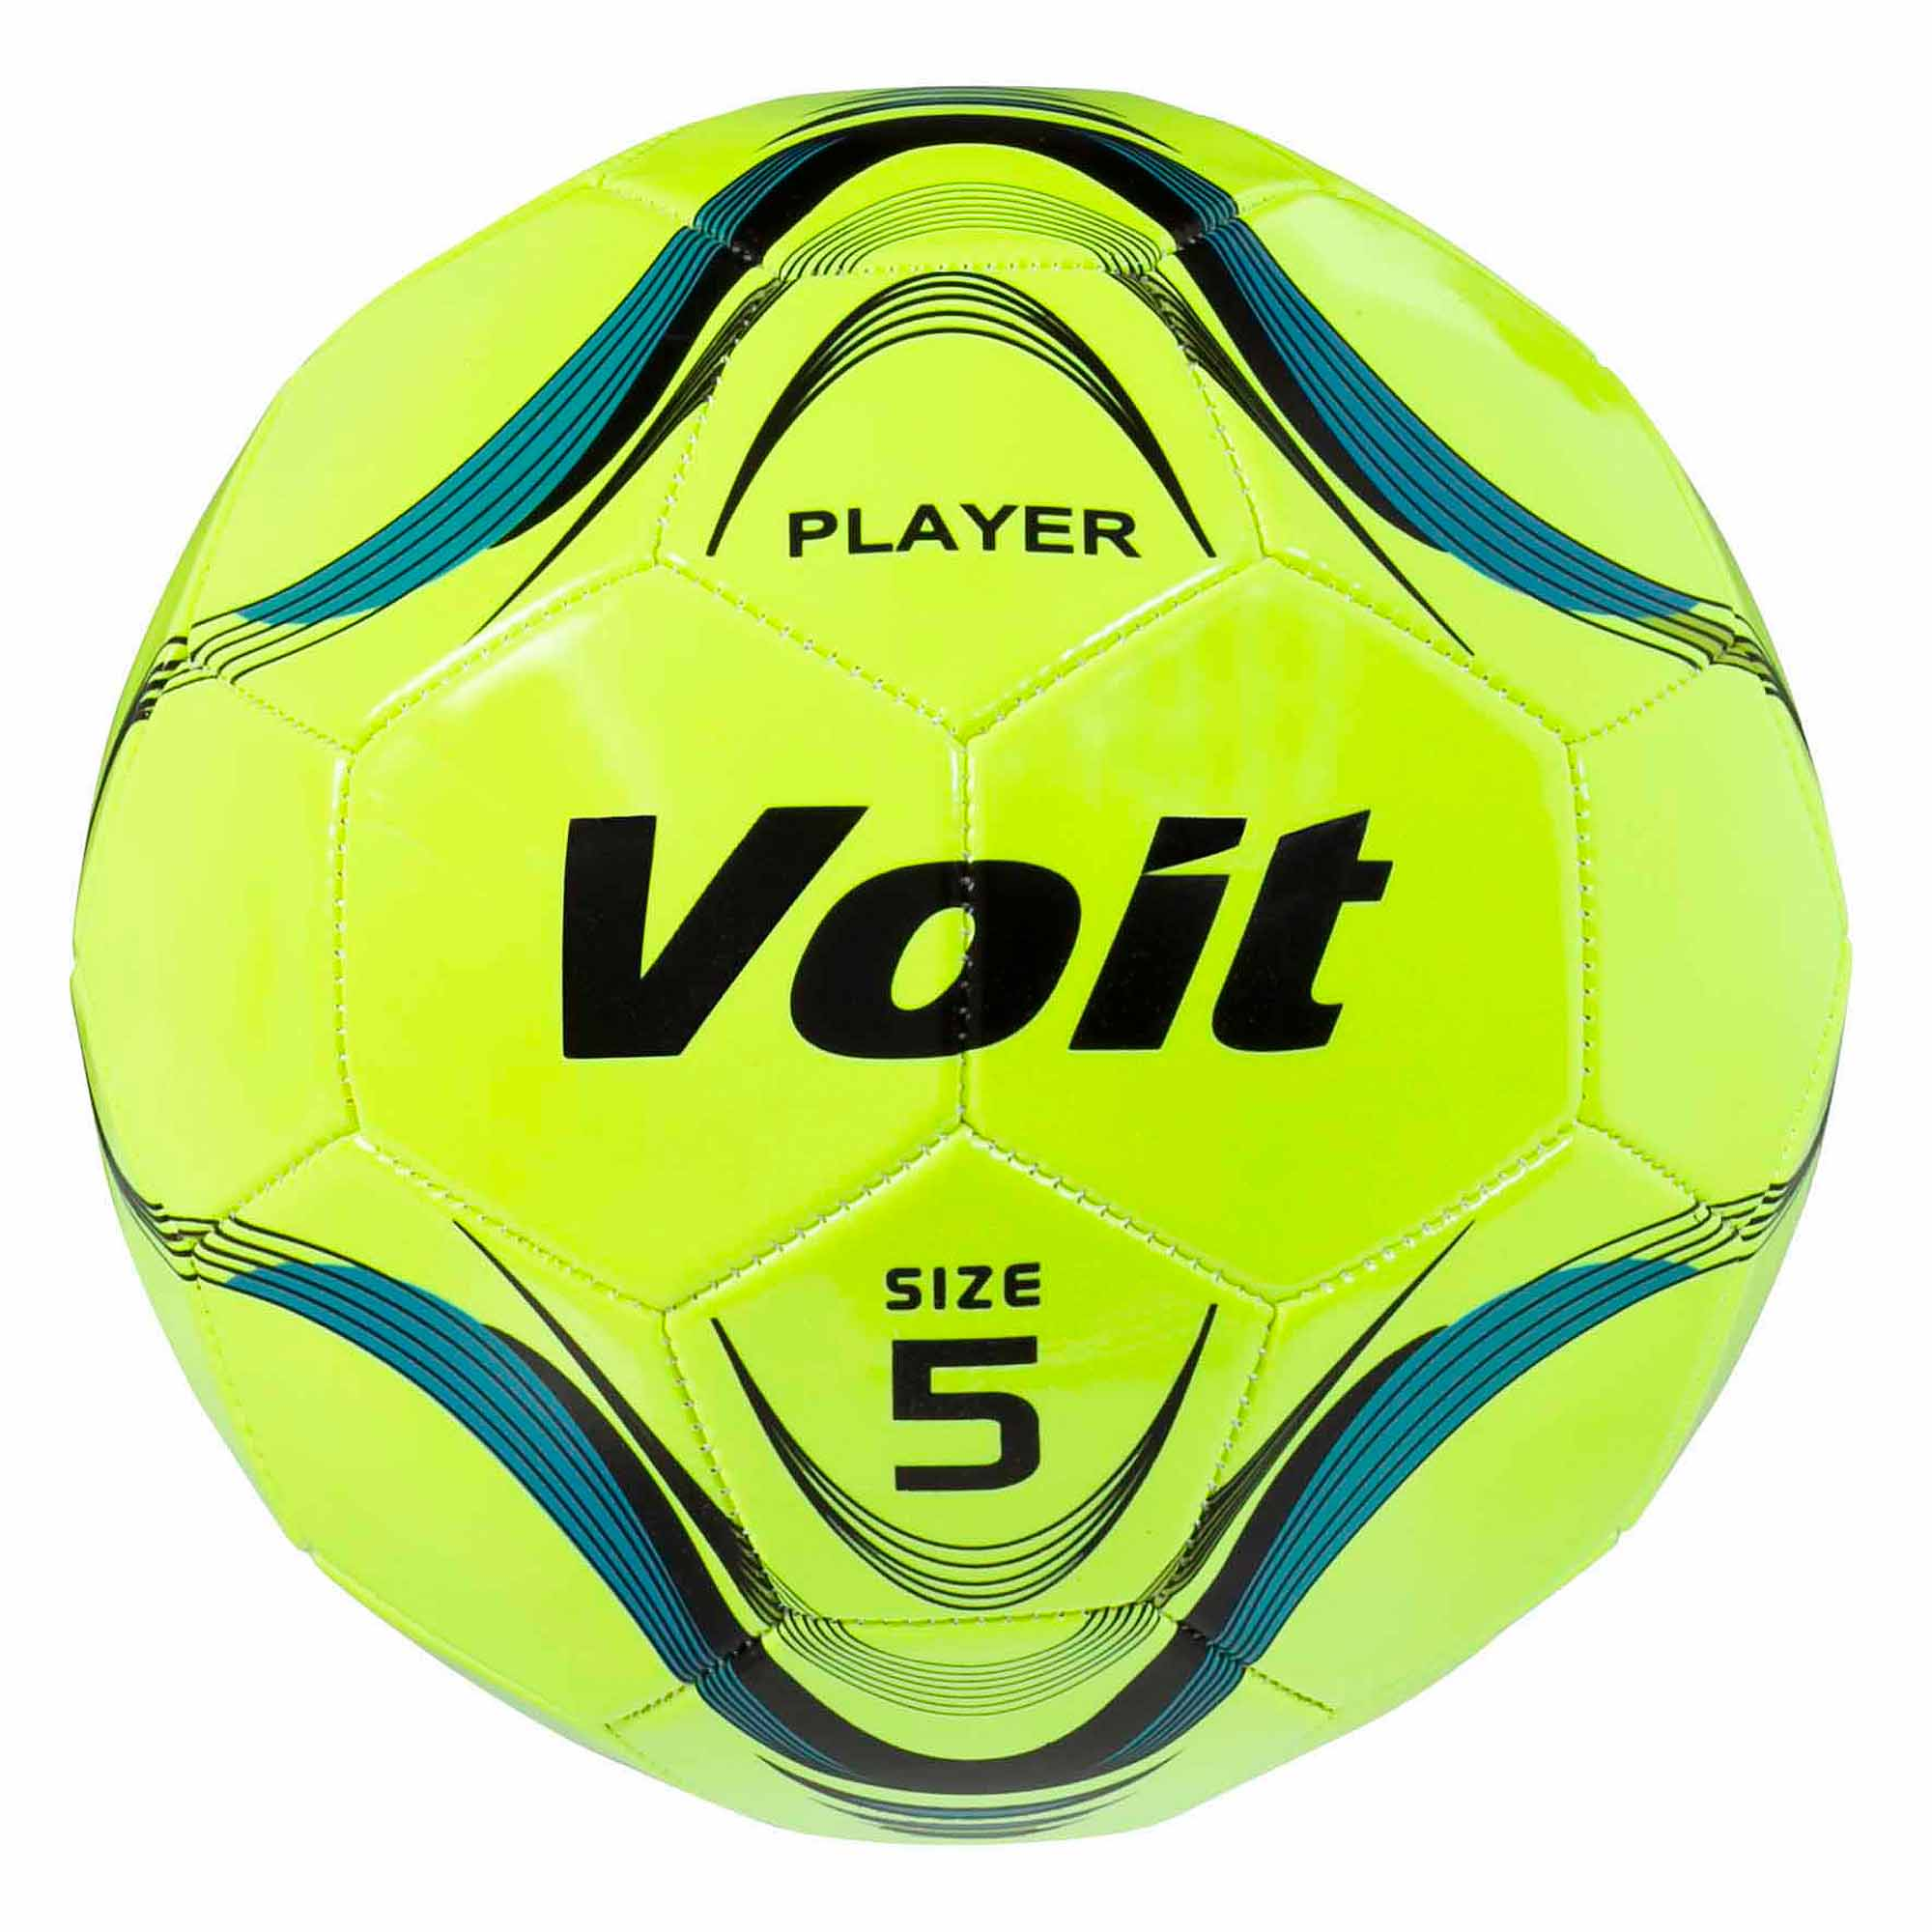 Voit Size 5 Player Soccer Ball, Deflated, Neon Yellow